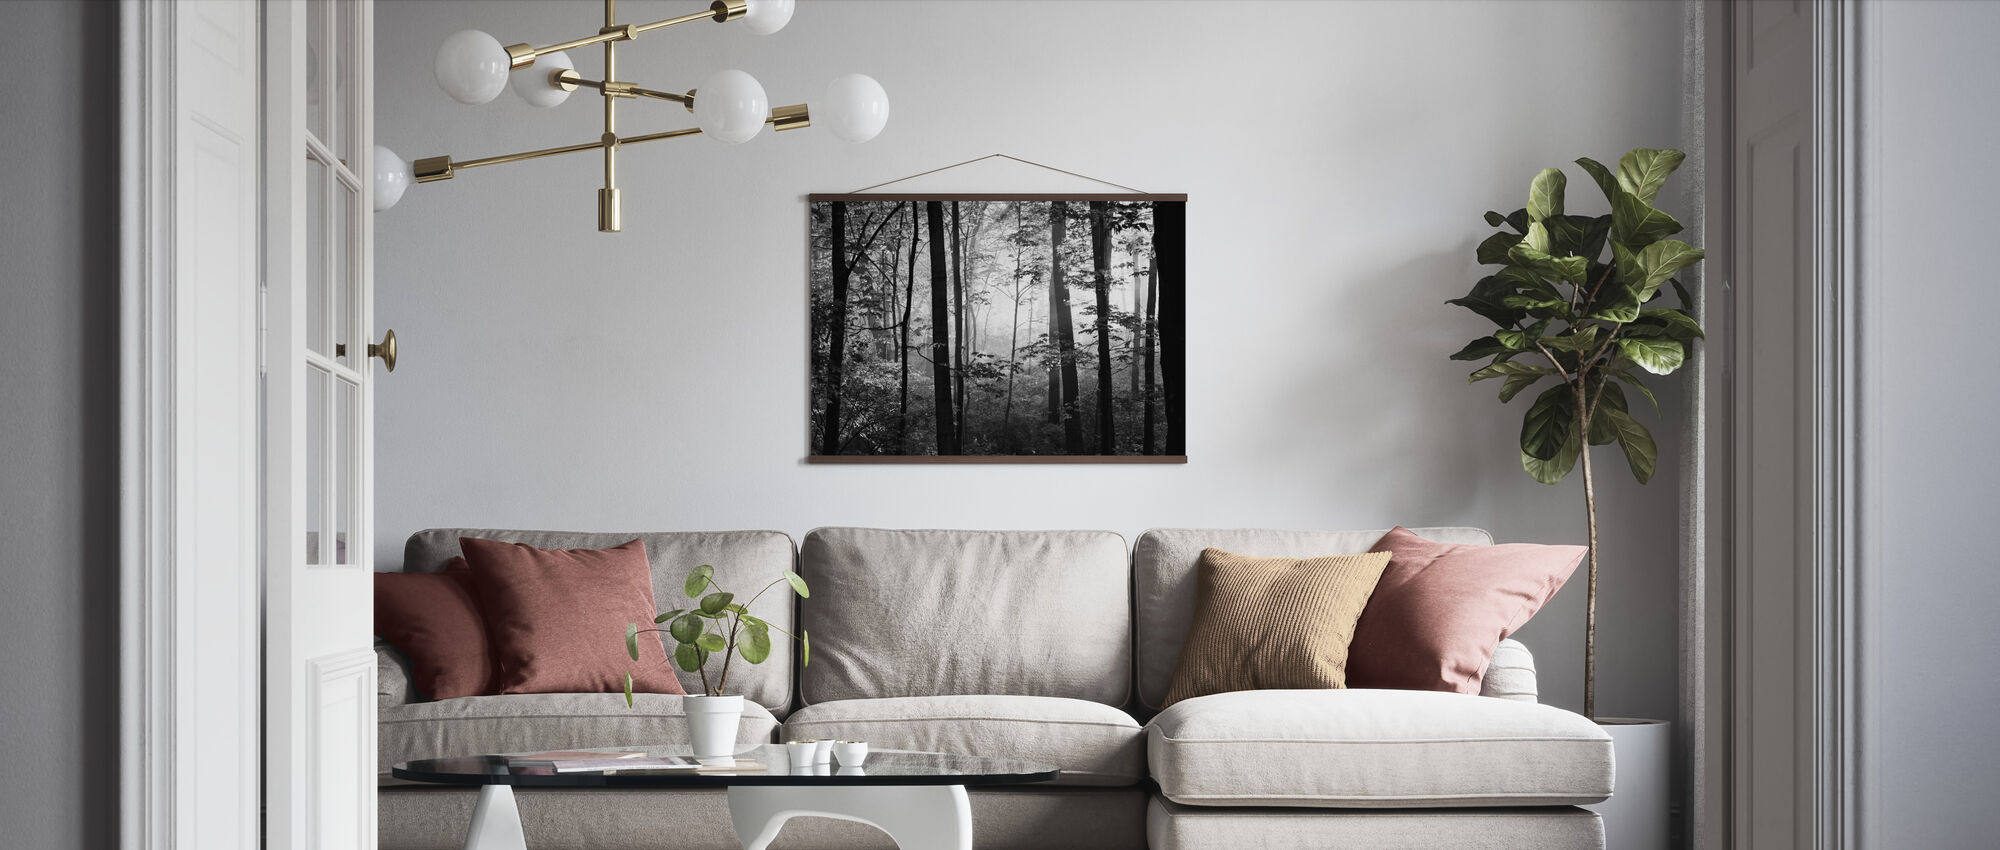 Early Morning - b/w - Poster - Living Room